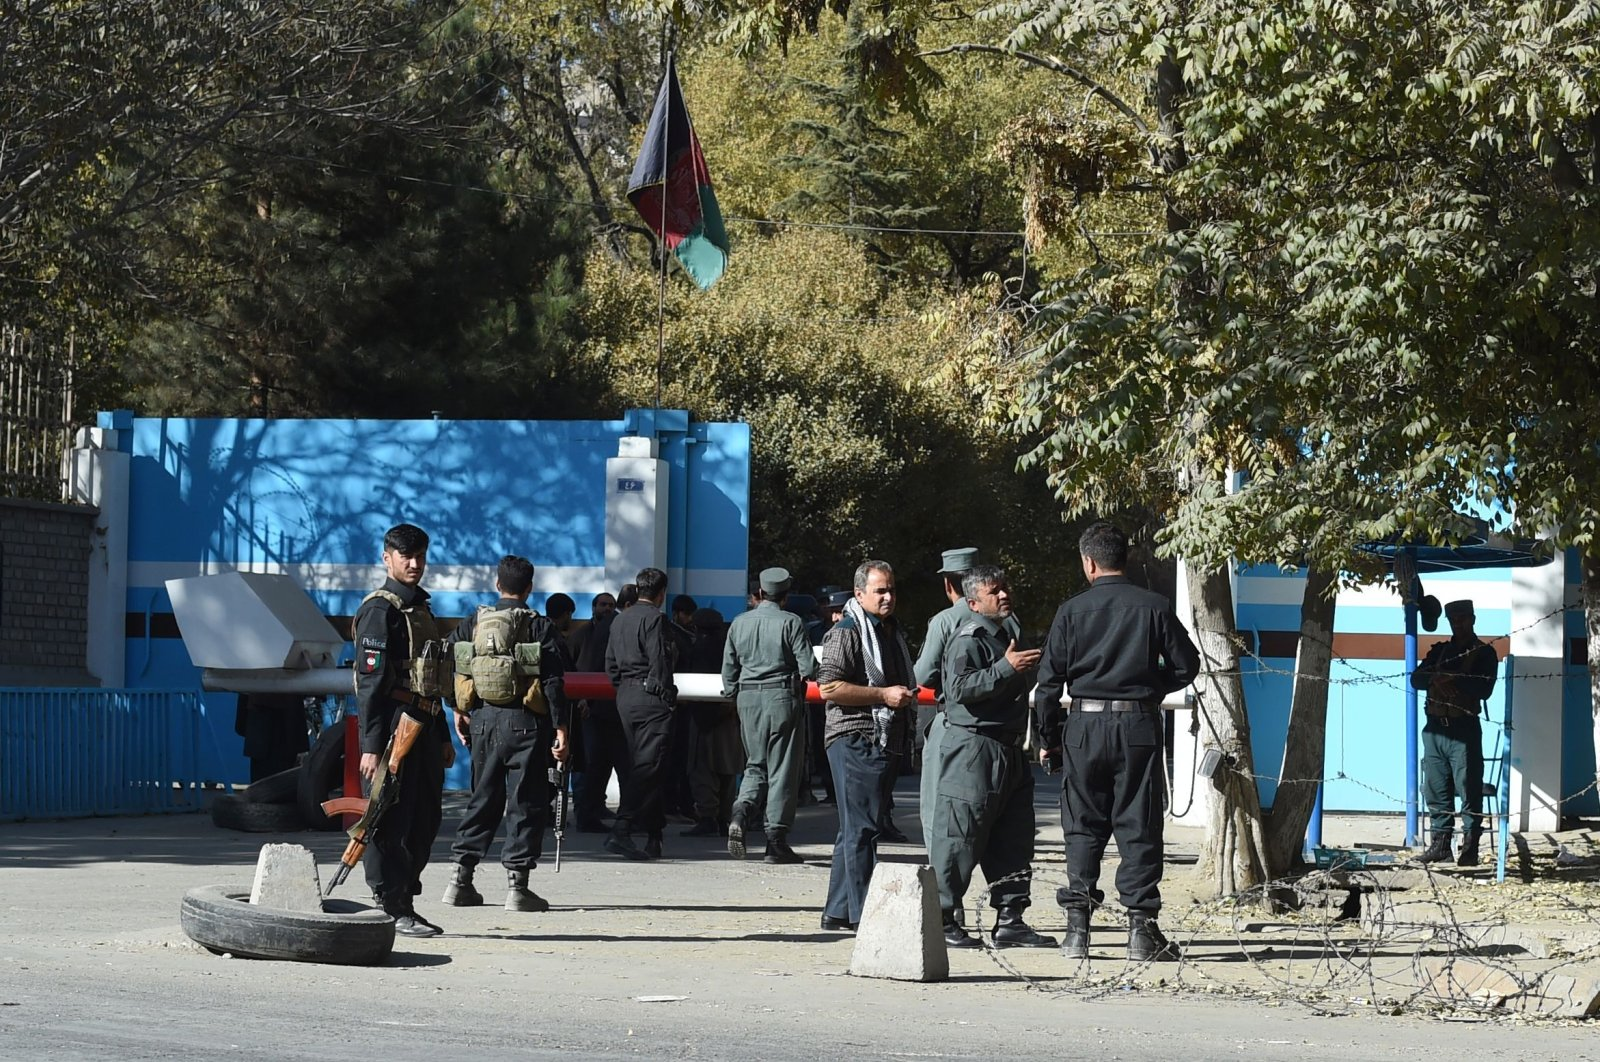 Police stand guard at an entrance gate of Kabul University in Kabul, Afghanistan, Nov. 2, 2020. (AFP Photo)